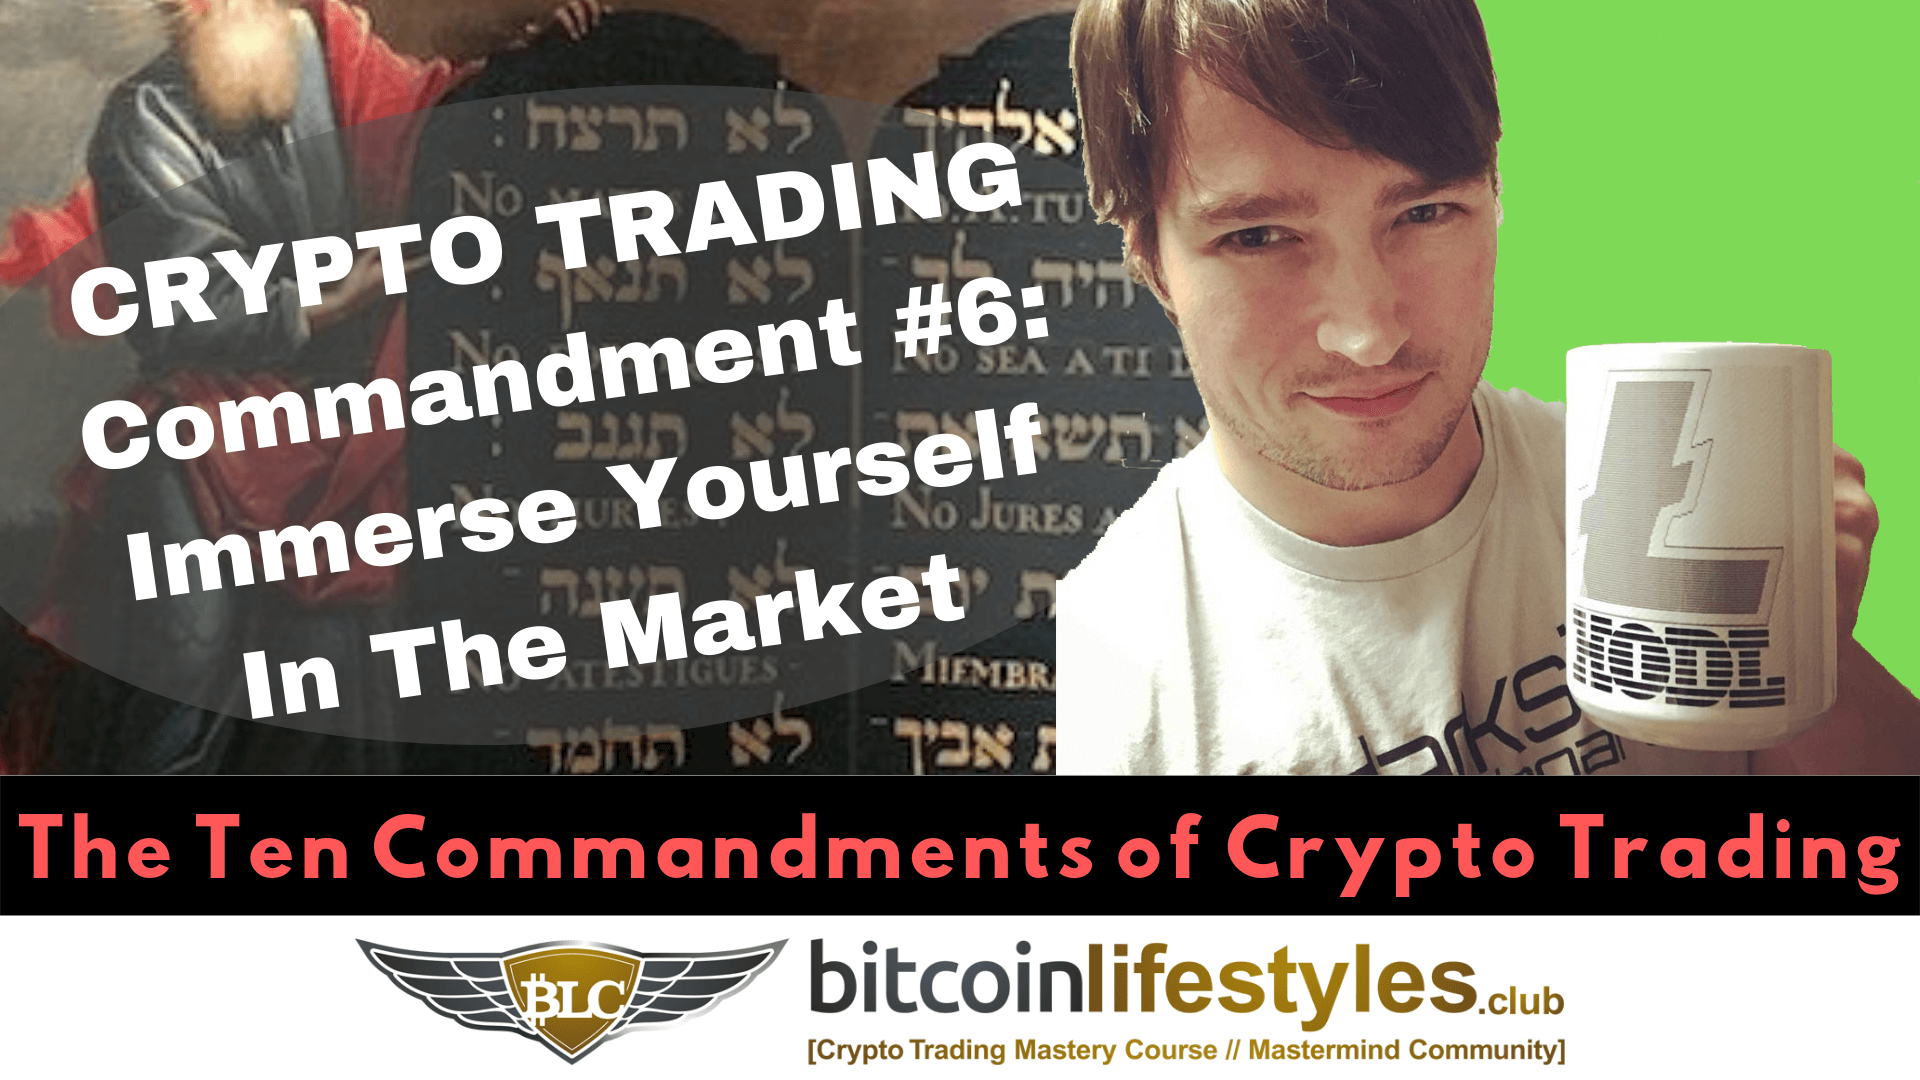 6th Crypto Trading Commandment: Thou Shalt Immerse Yourself In The Crypto Market